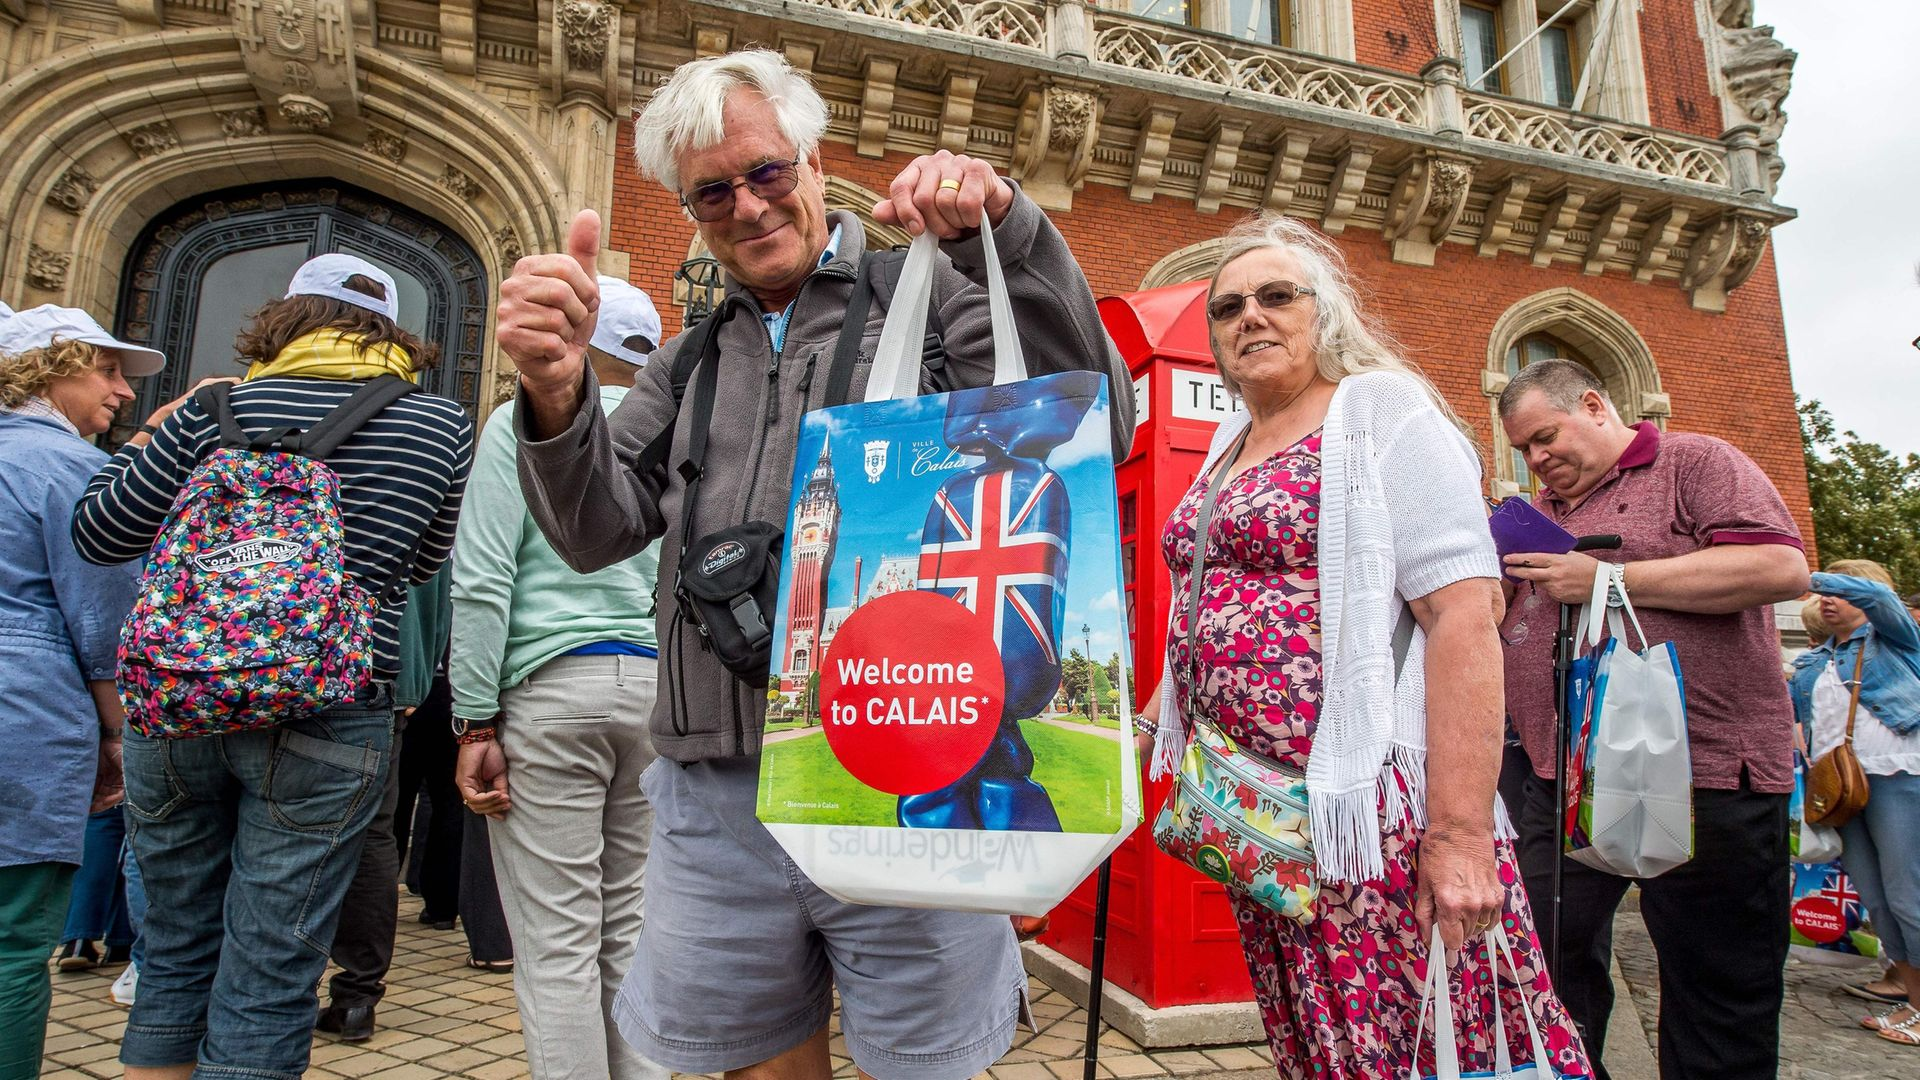 A British tourist poses with a shopping bag at Calais Town Hall - Credit: Photo: PhilippeHuguen/AFP via Getty Images